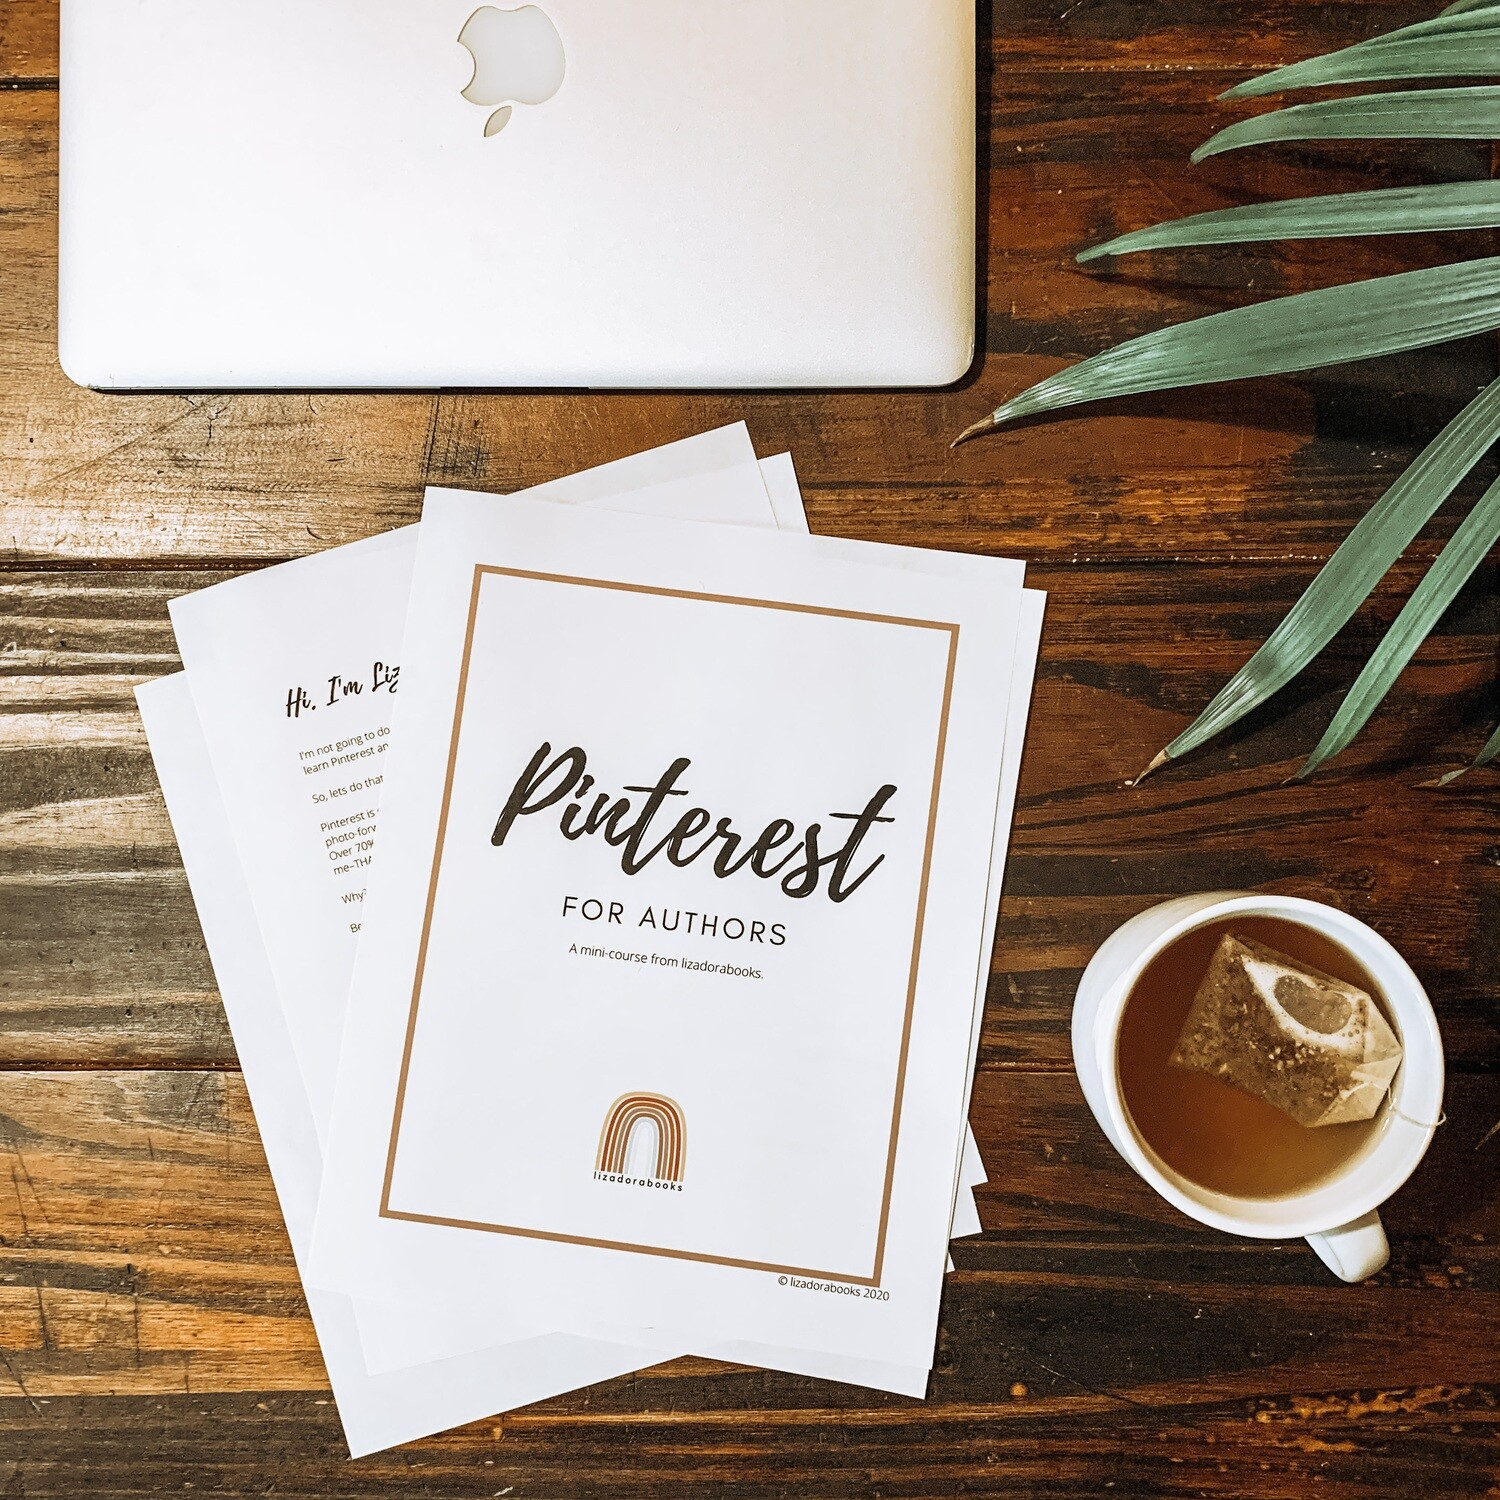 Pinterest Mini-Course for Authors